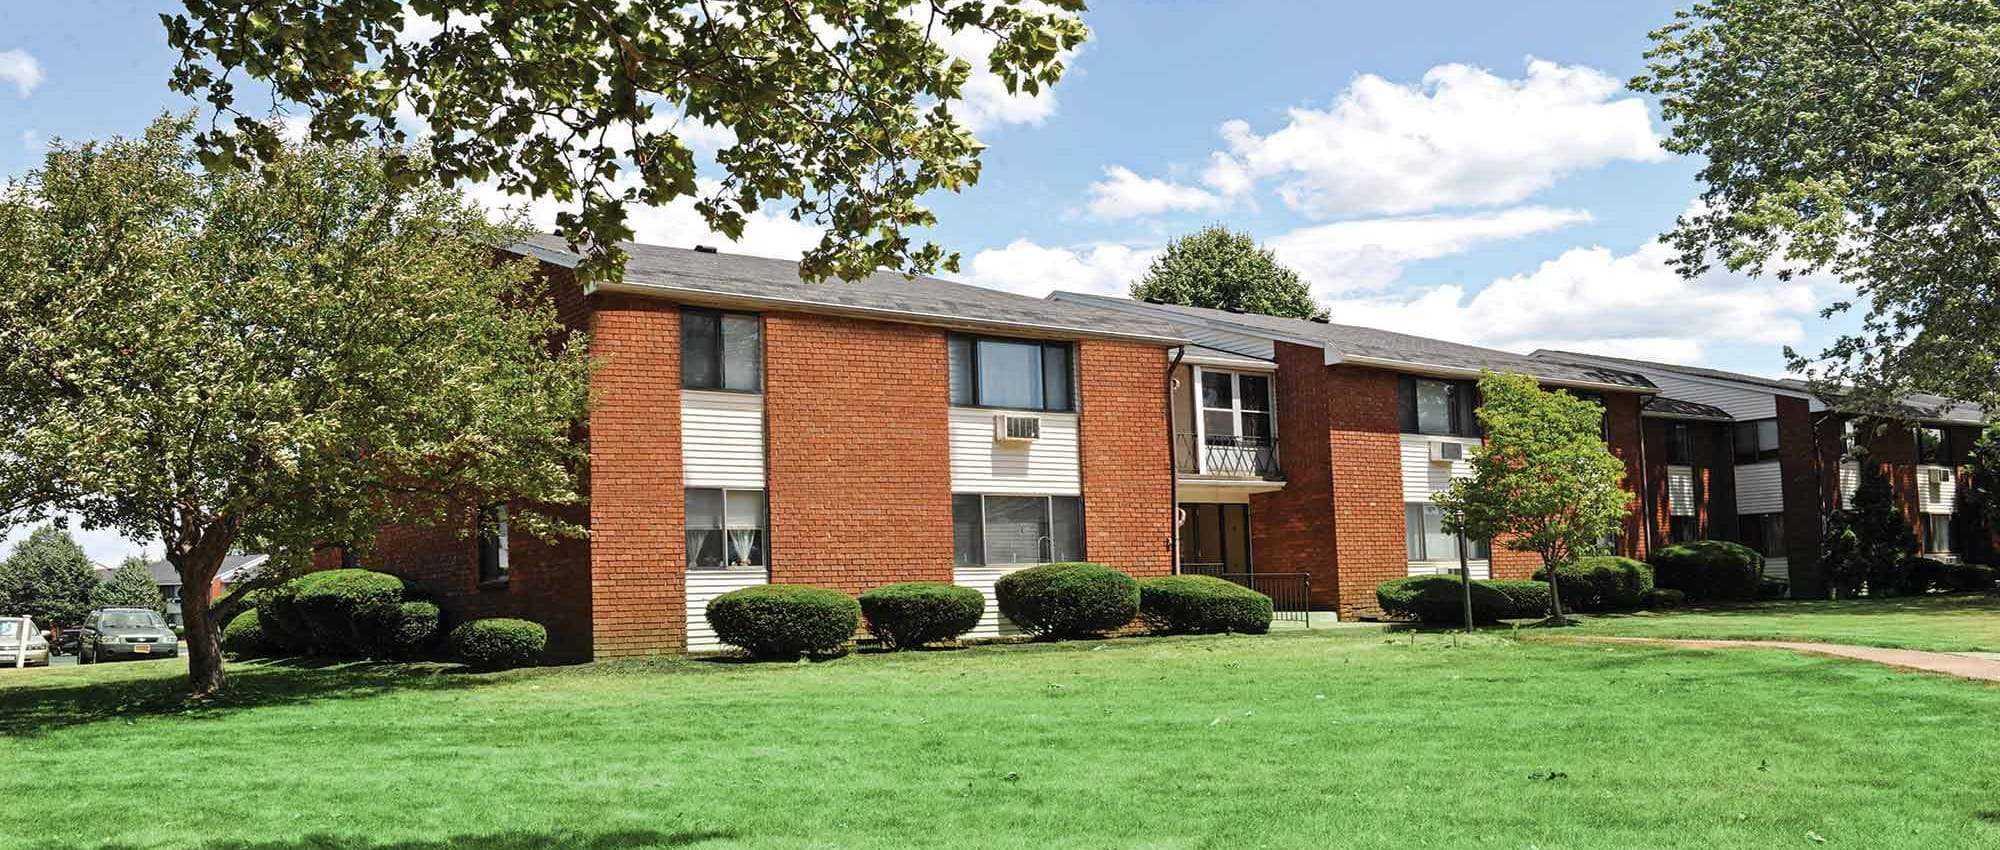 Apartments at King's Court Manor Apartments in Rochester, New York